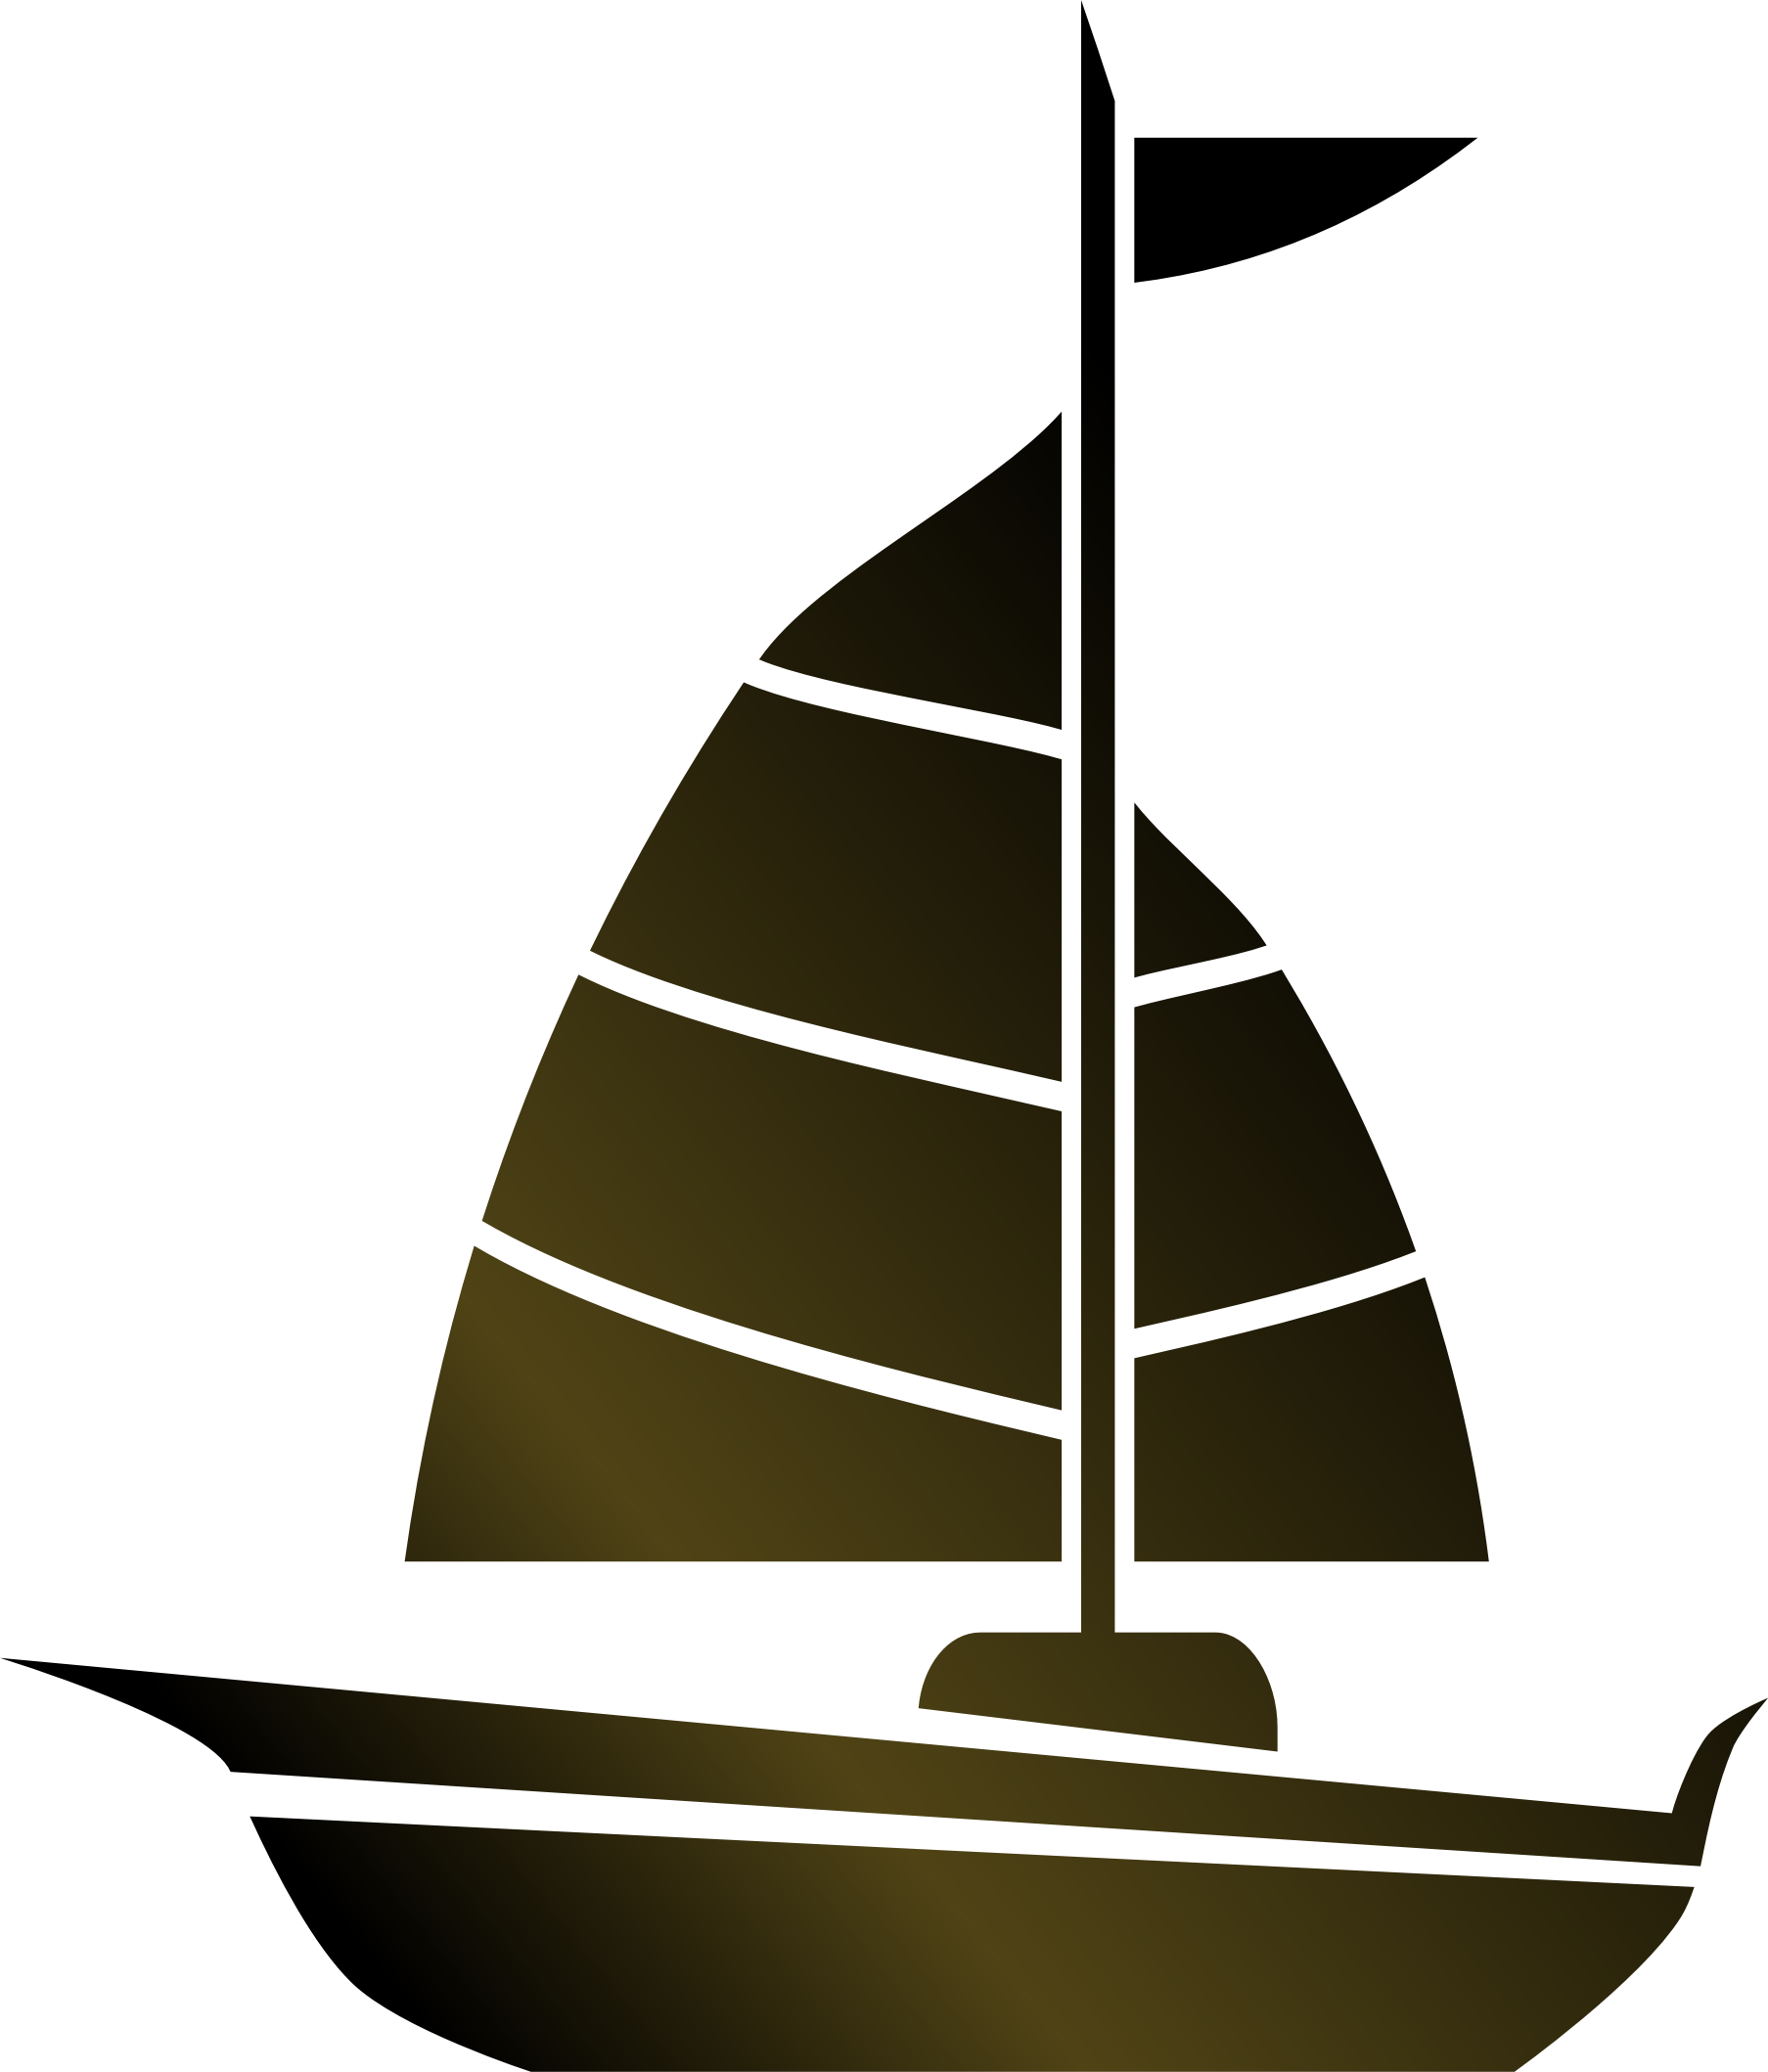 Clipart anchor sailboat. Simple by viscious speed